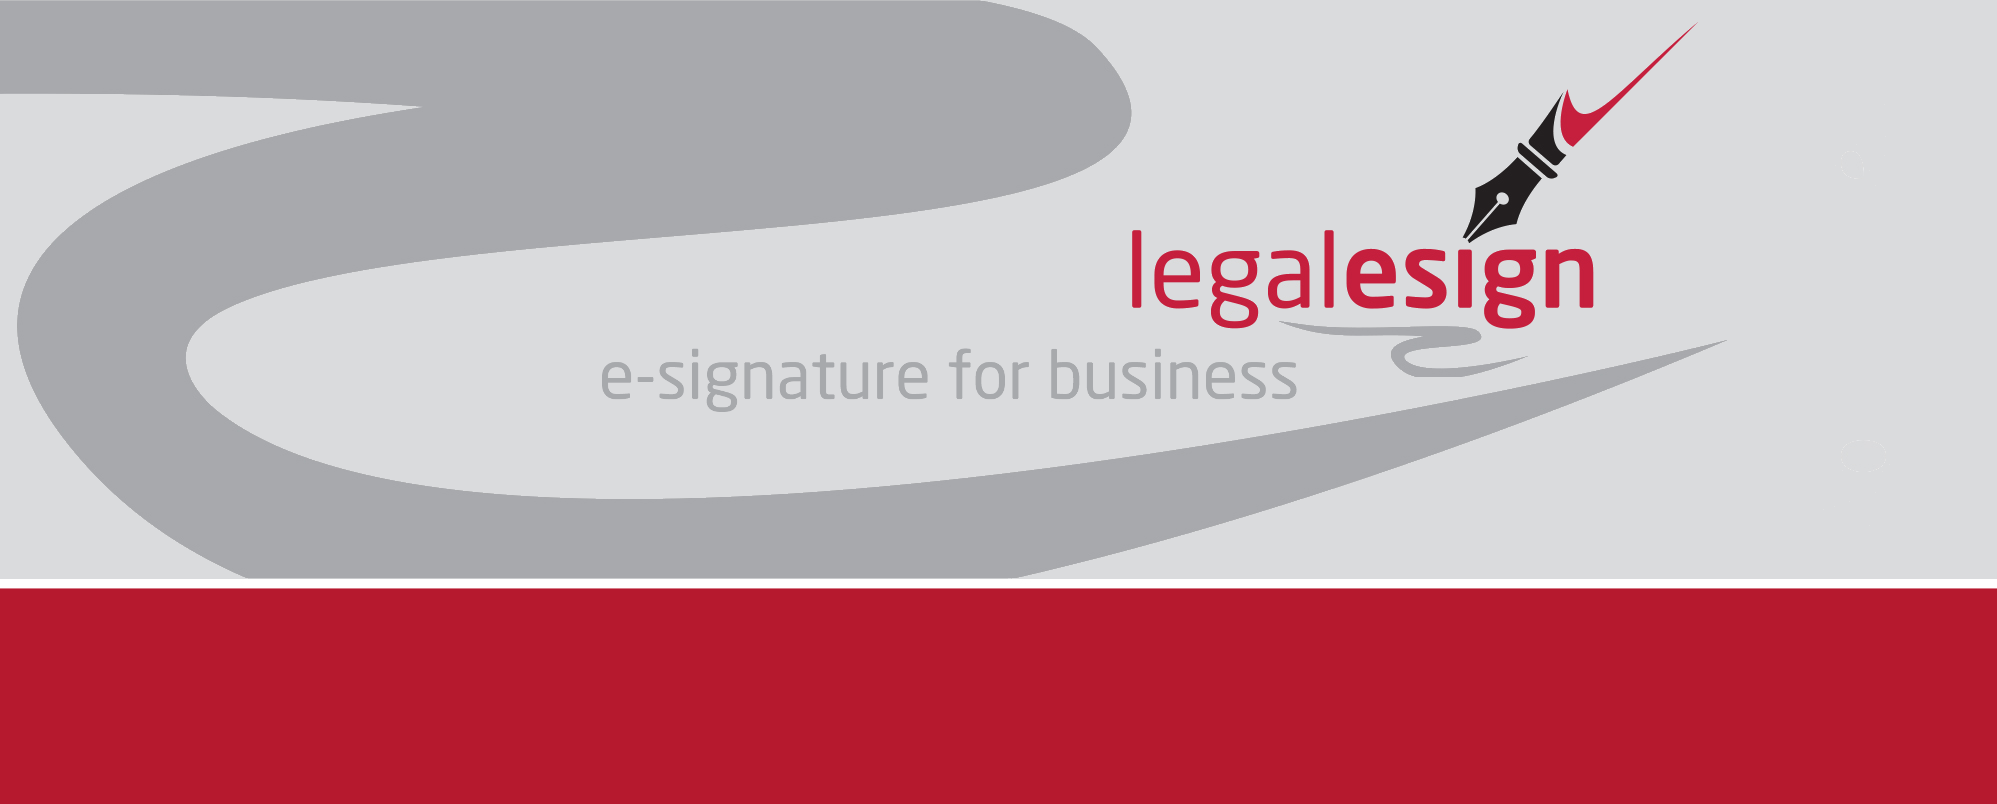 Image for What are the benefits of e-signature for your business?